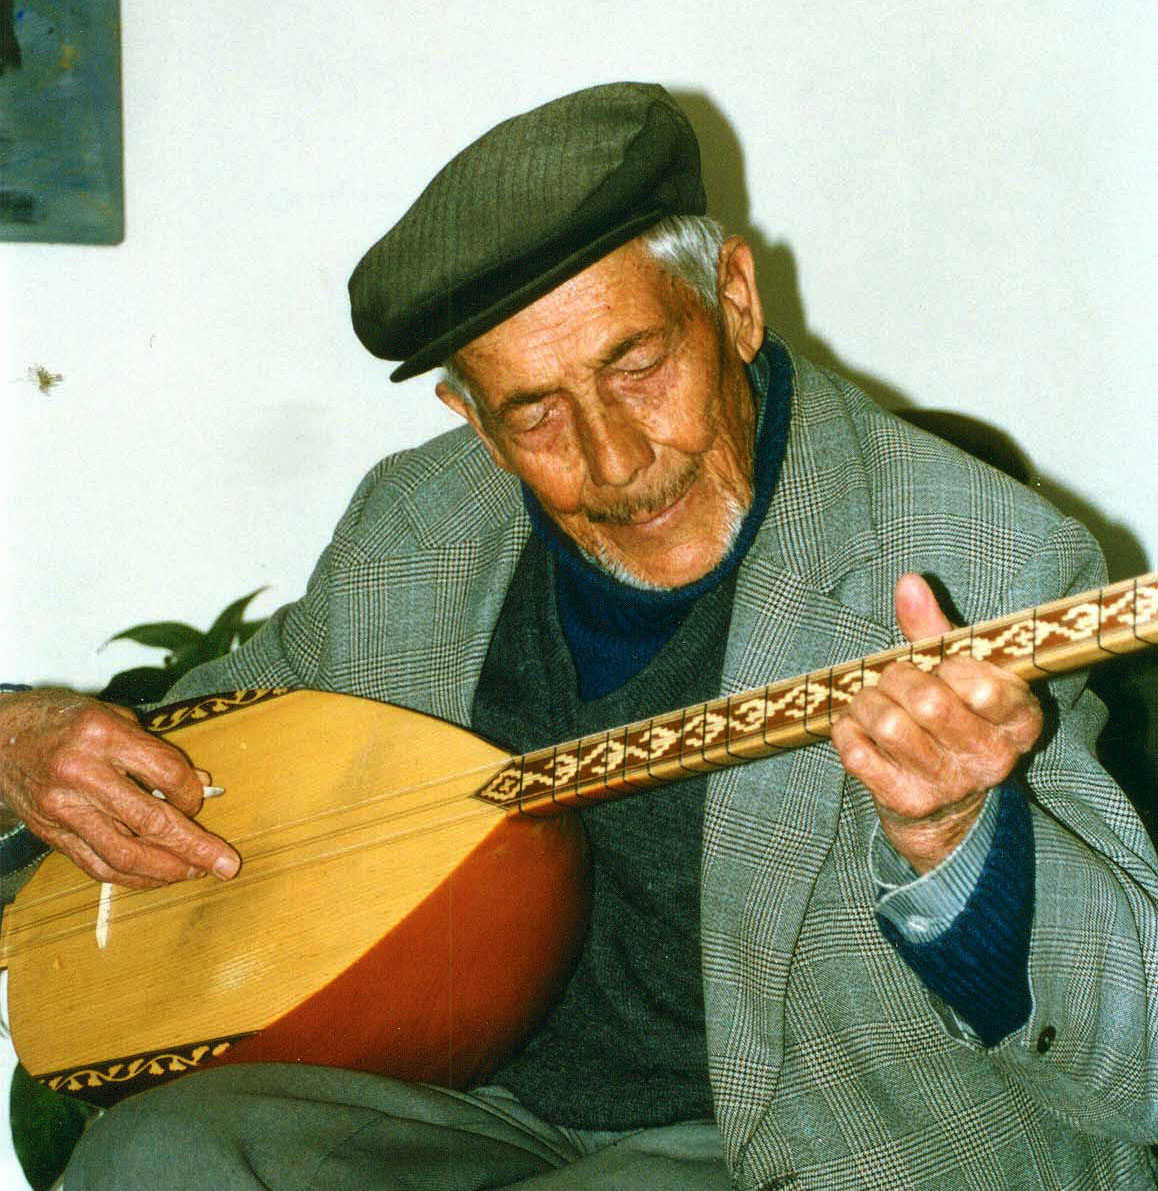 Photo: Old Man from Uchisar, Cappadocia, playing Saz